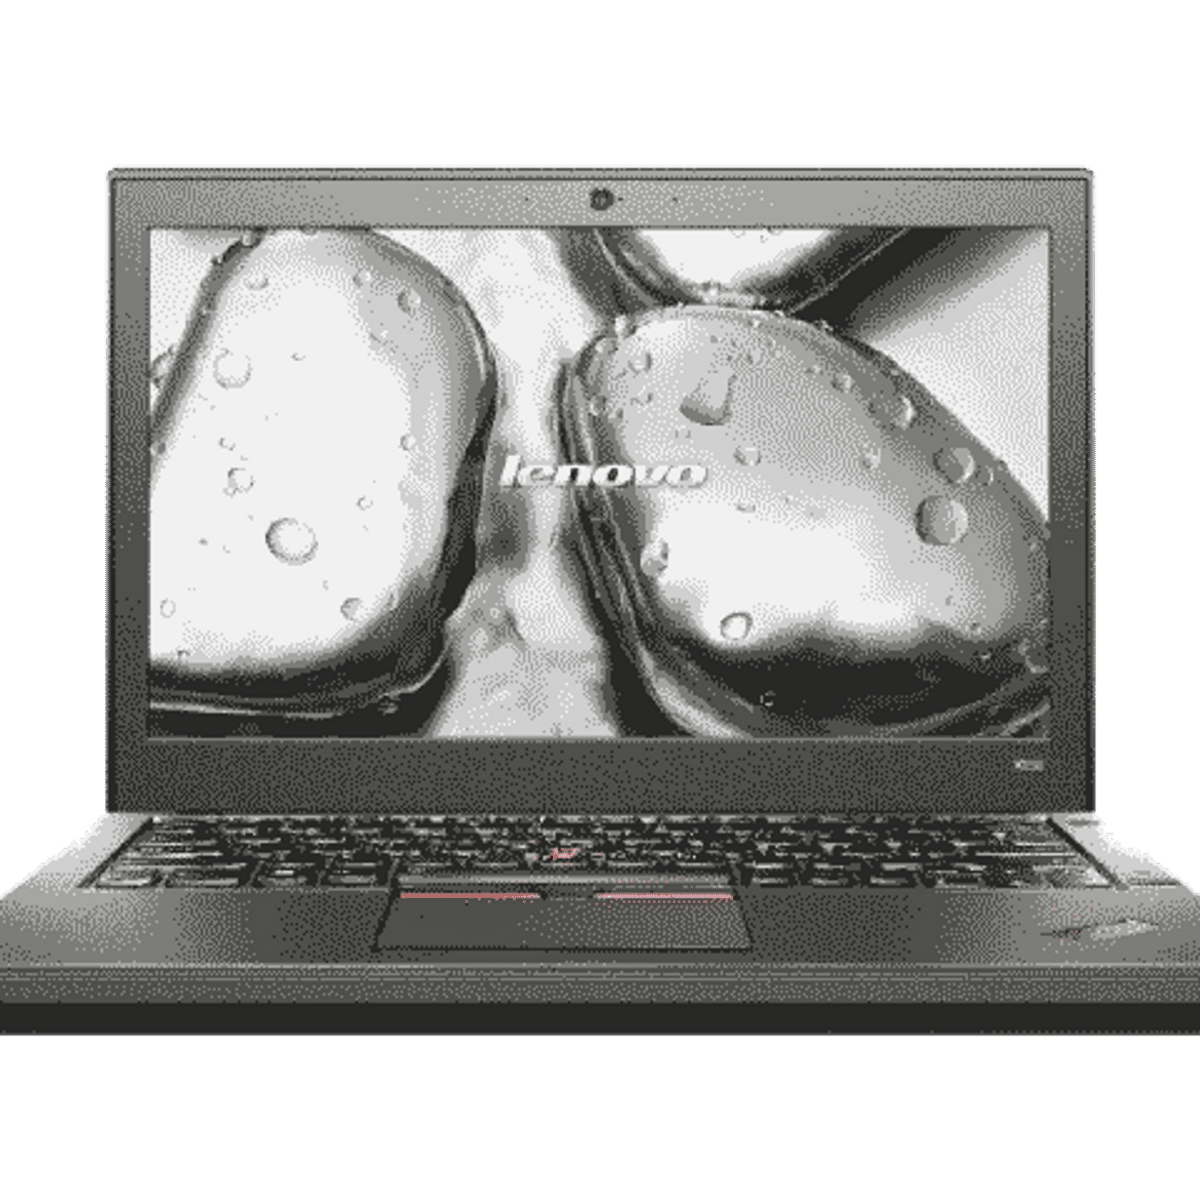 Lenovo Thinkpad X250 Price In India Full Specs 10th October 2020 Digit